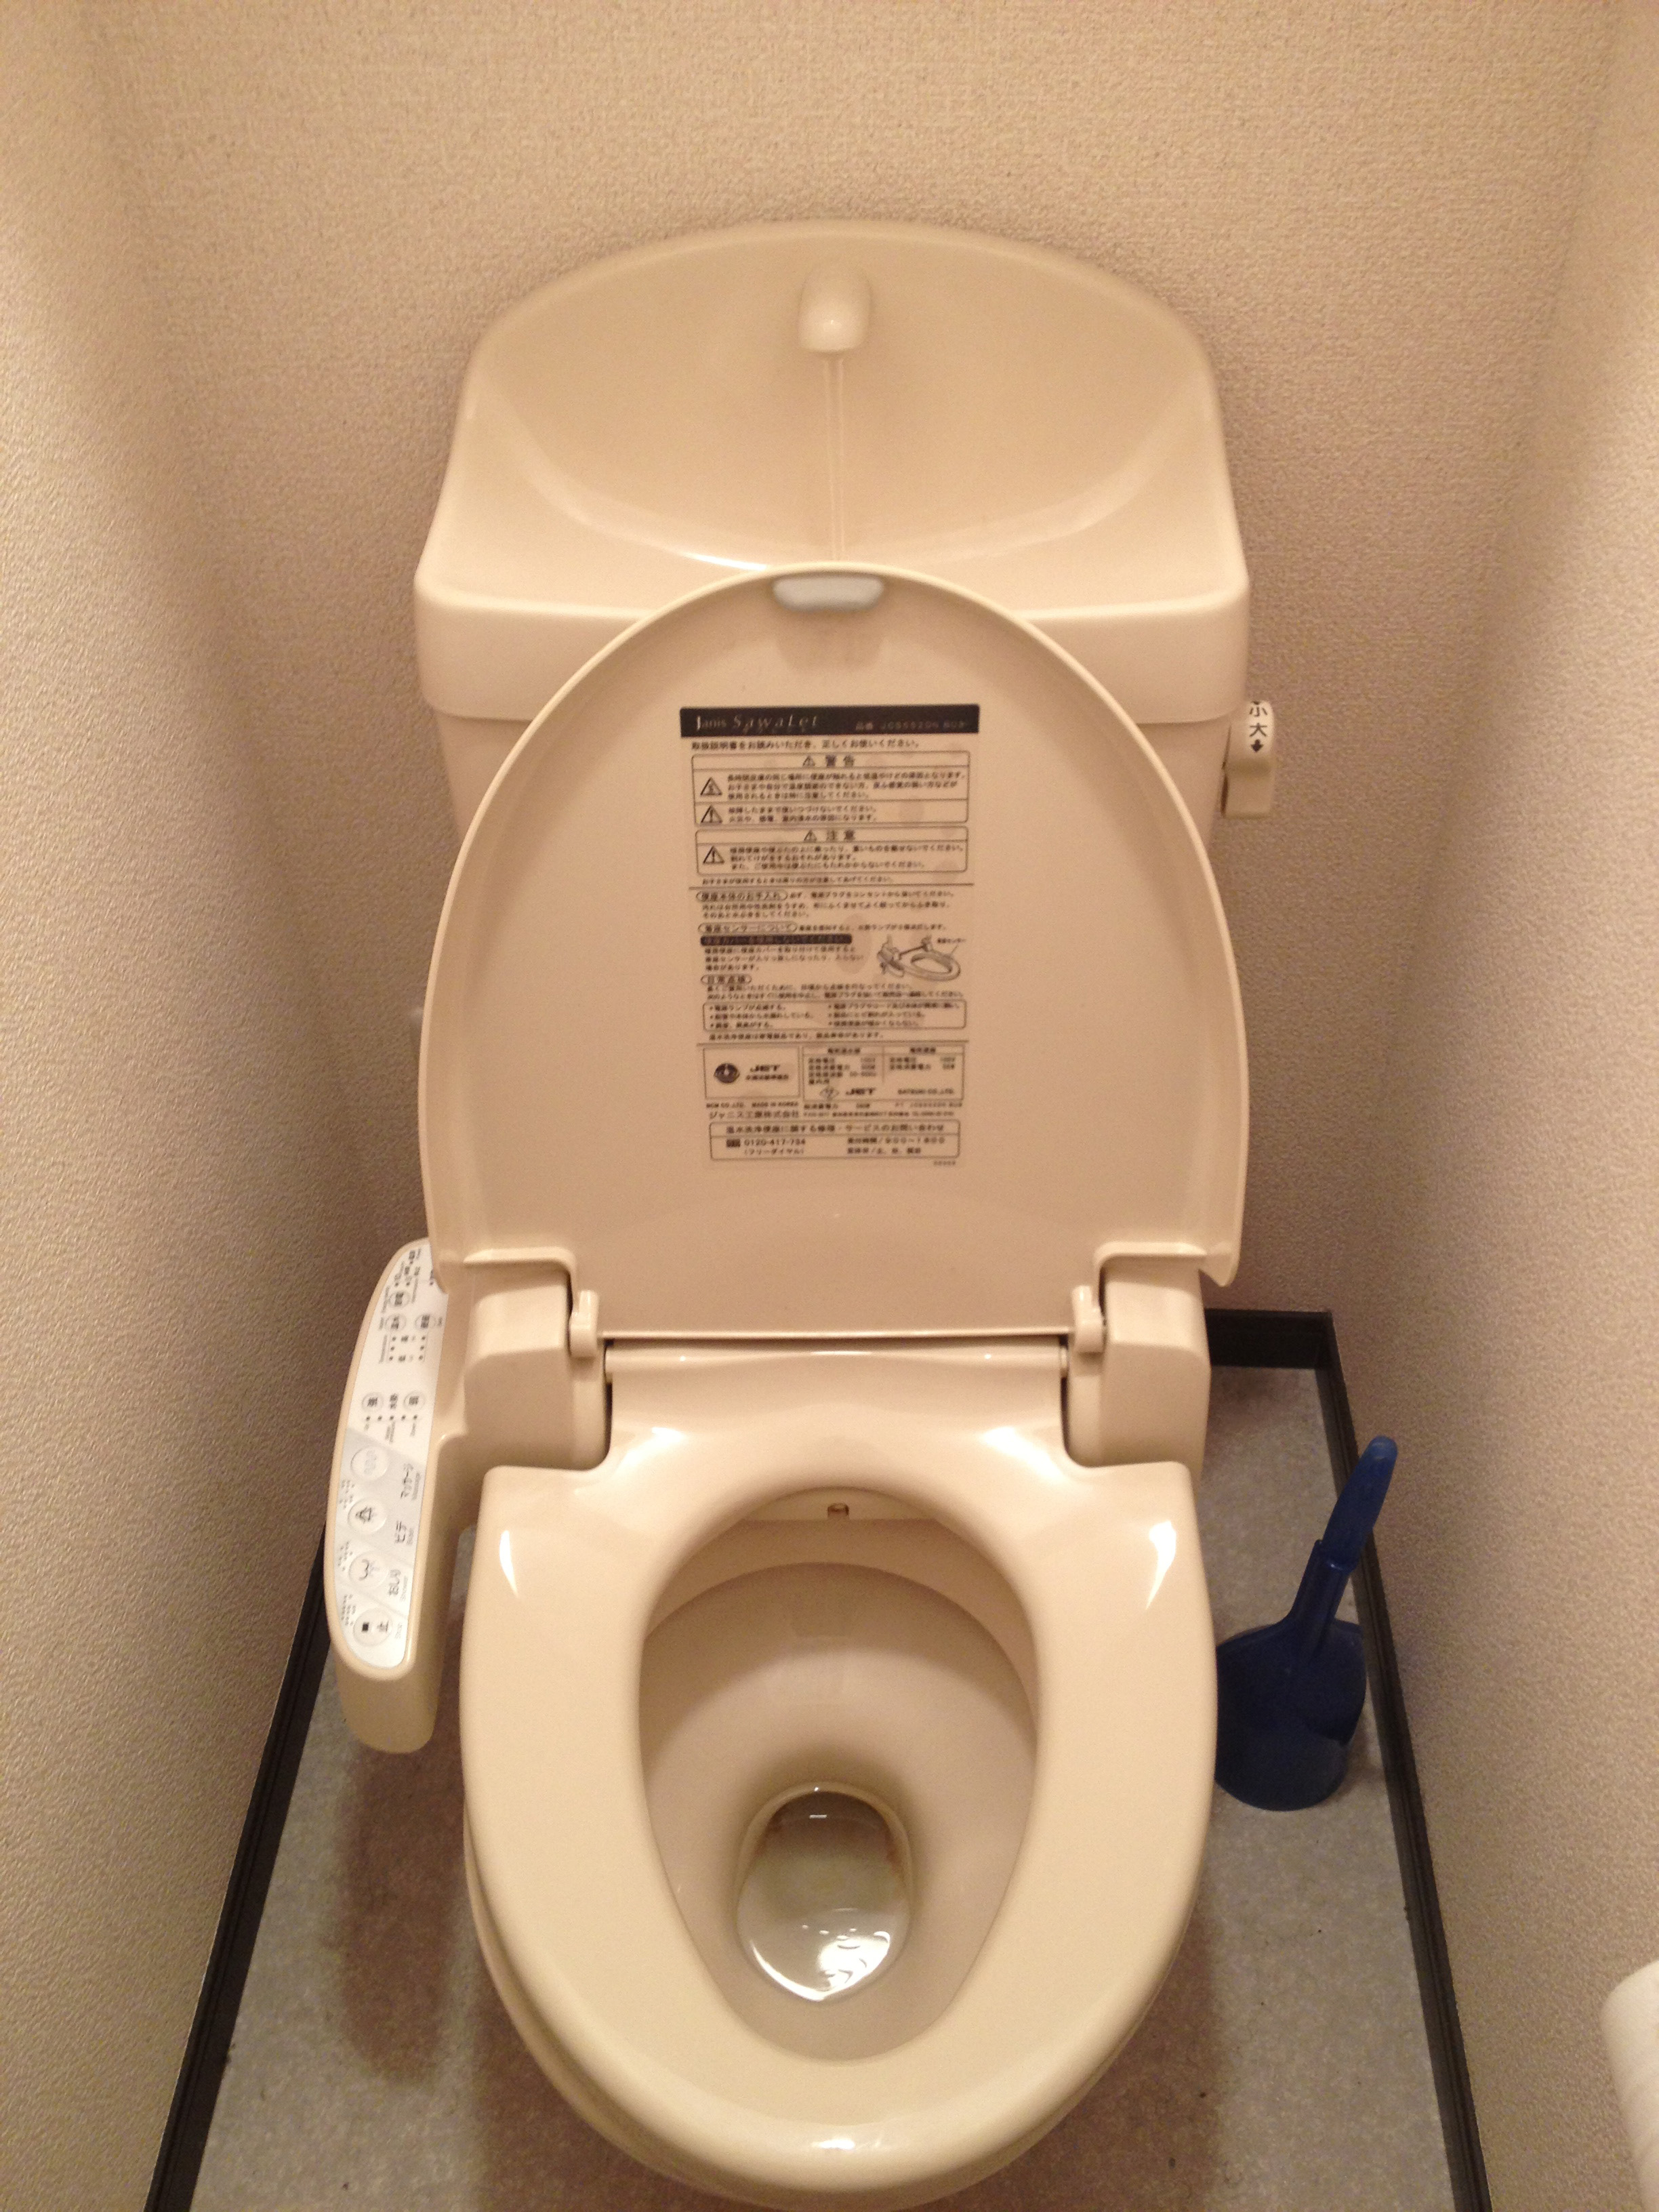 Japanese Toilet Toilets  From Squatting To Robotic IntrovertJapan